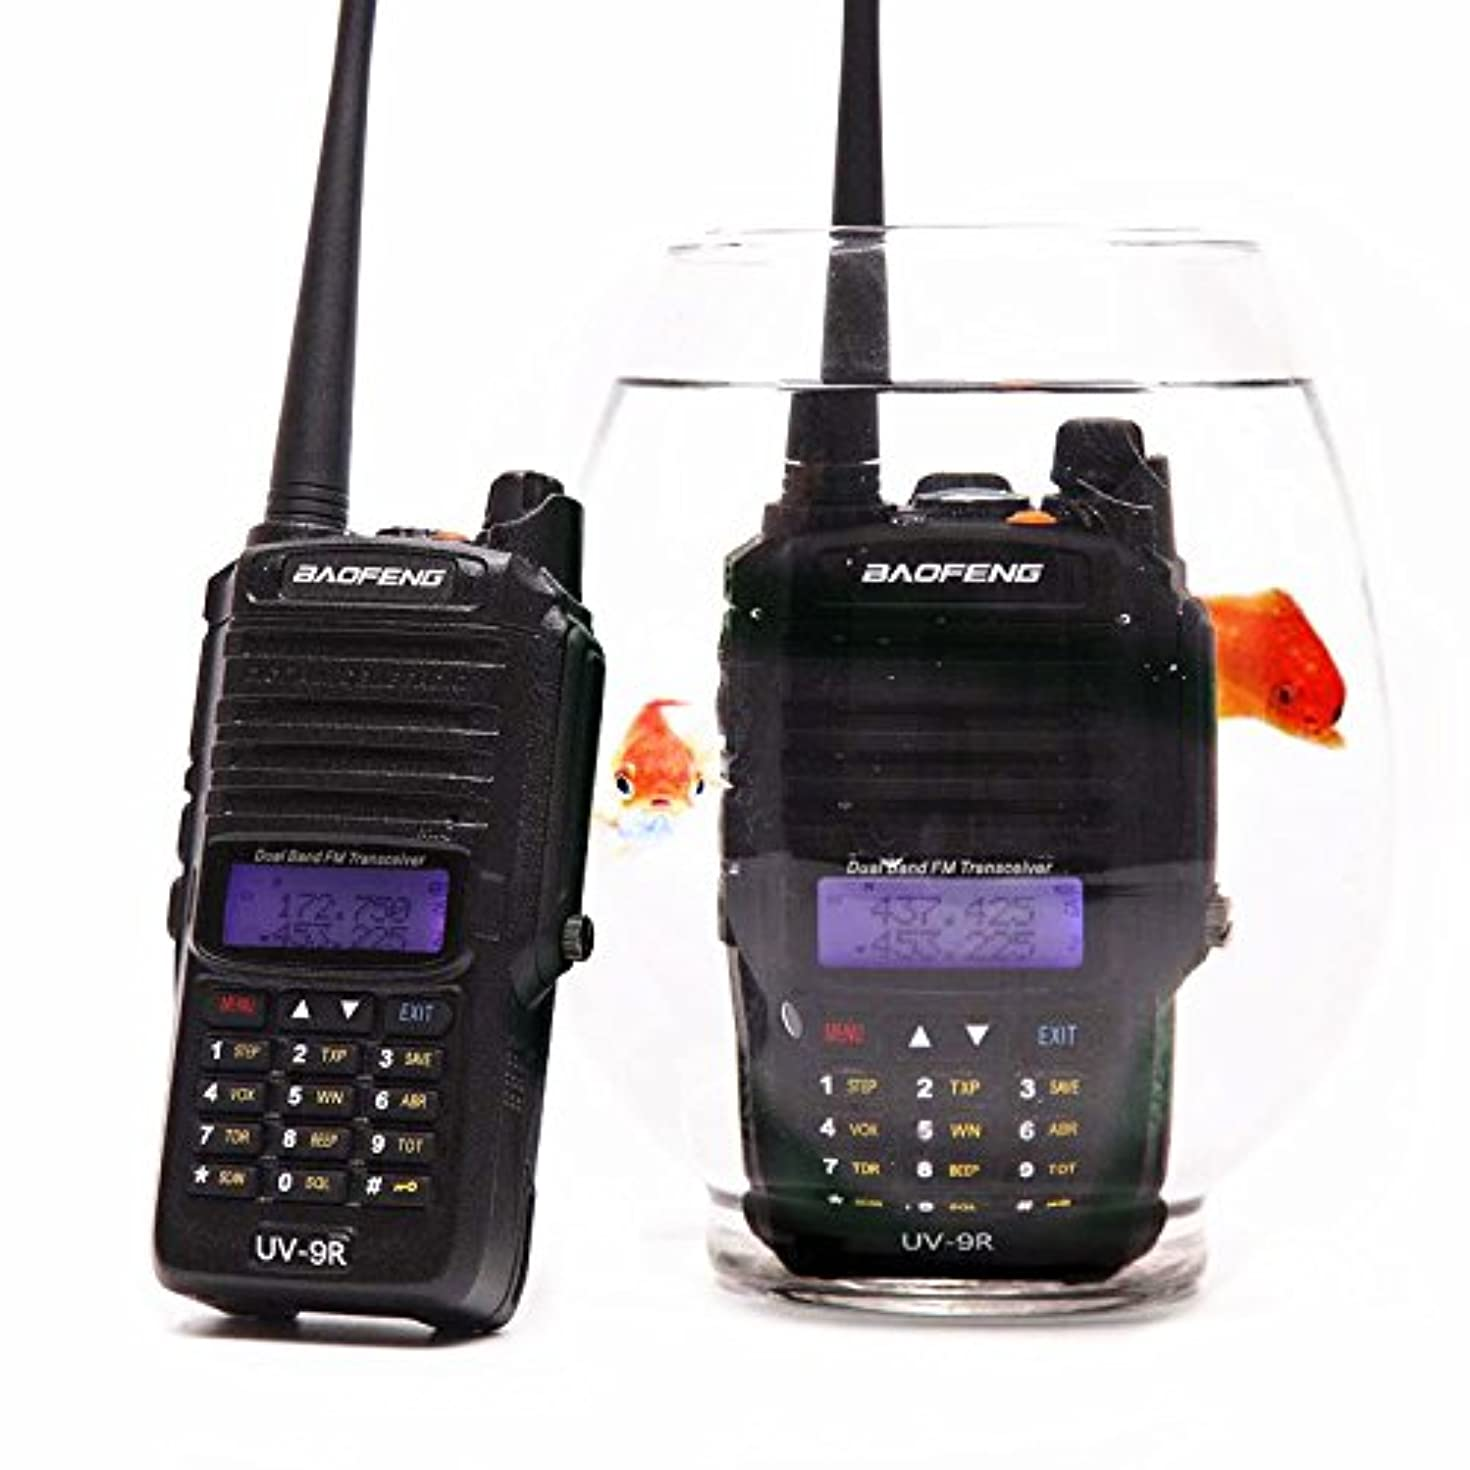 Baofeng UV-9R 136-174/400-520MHZ VHF/UHF Dual Band Dustproof Waterproof IP57 Transceiver Walkie Talkie Two Way Radio